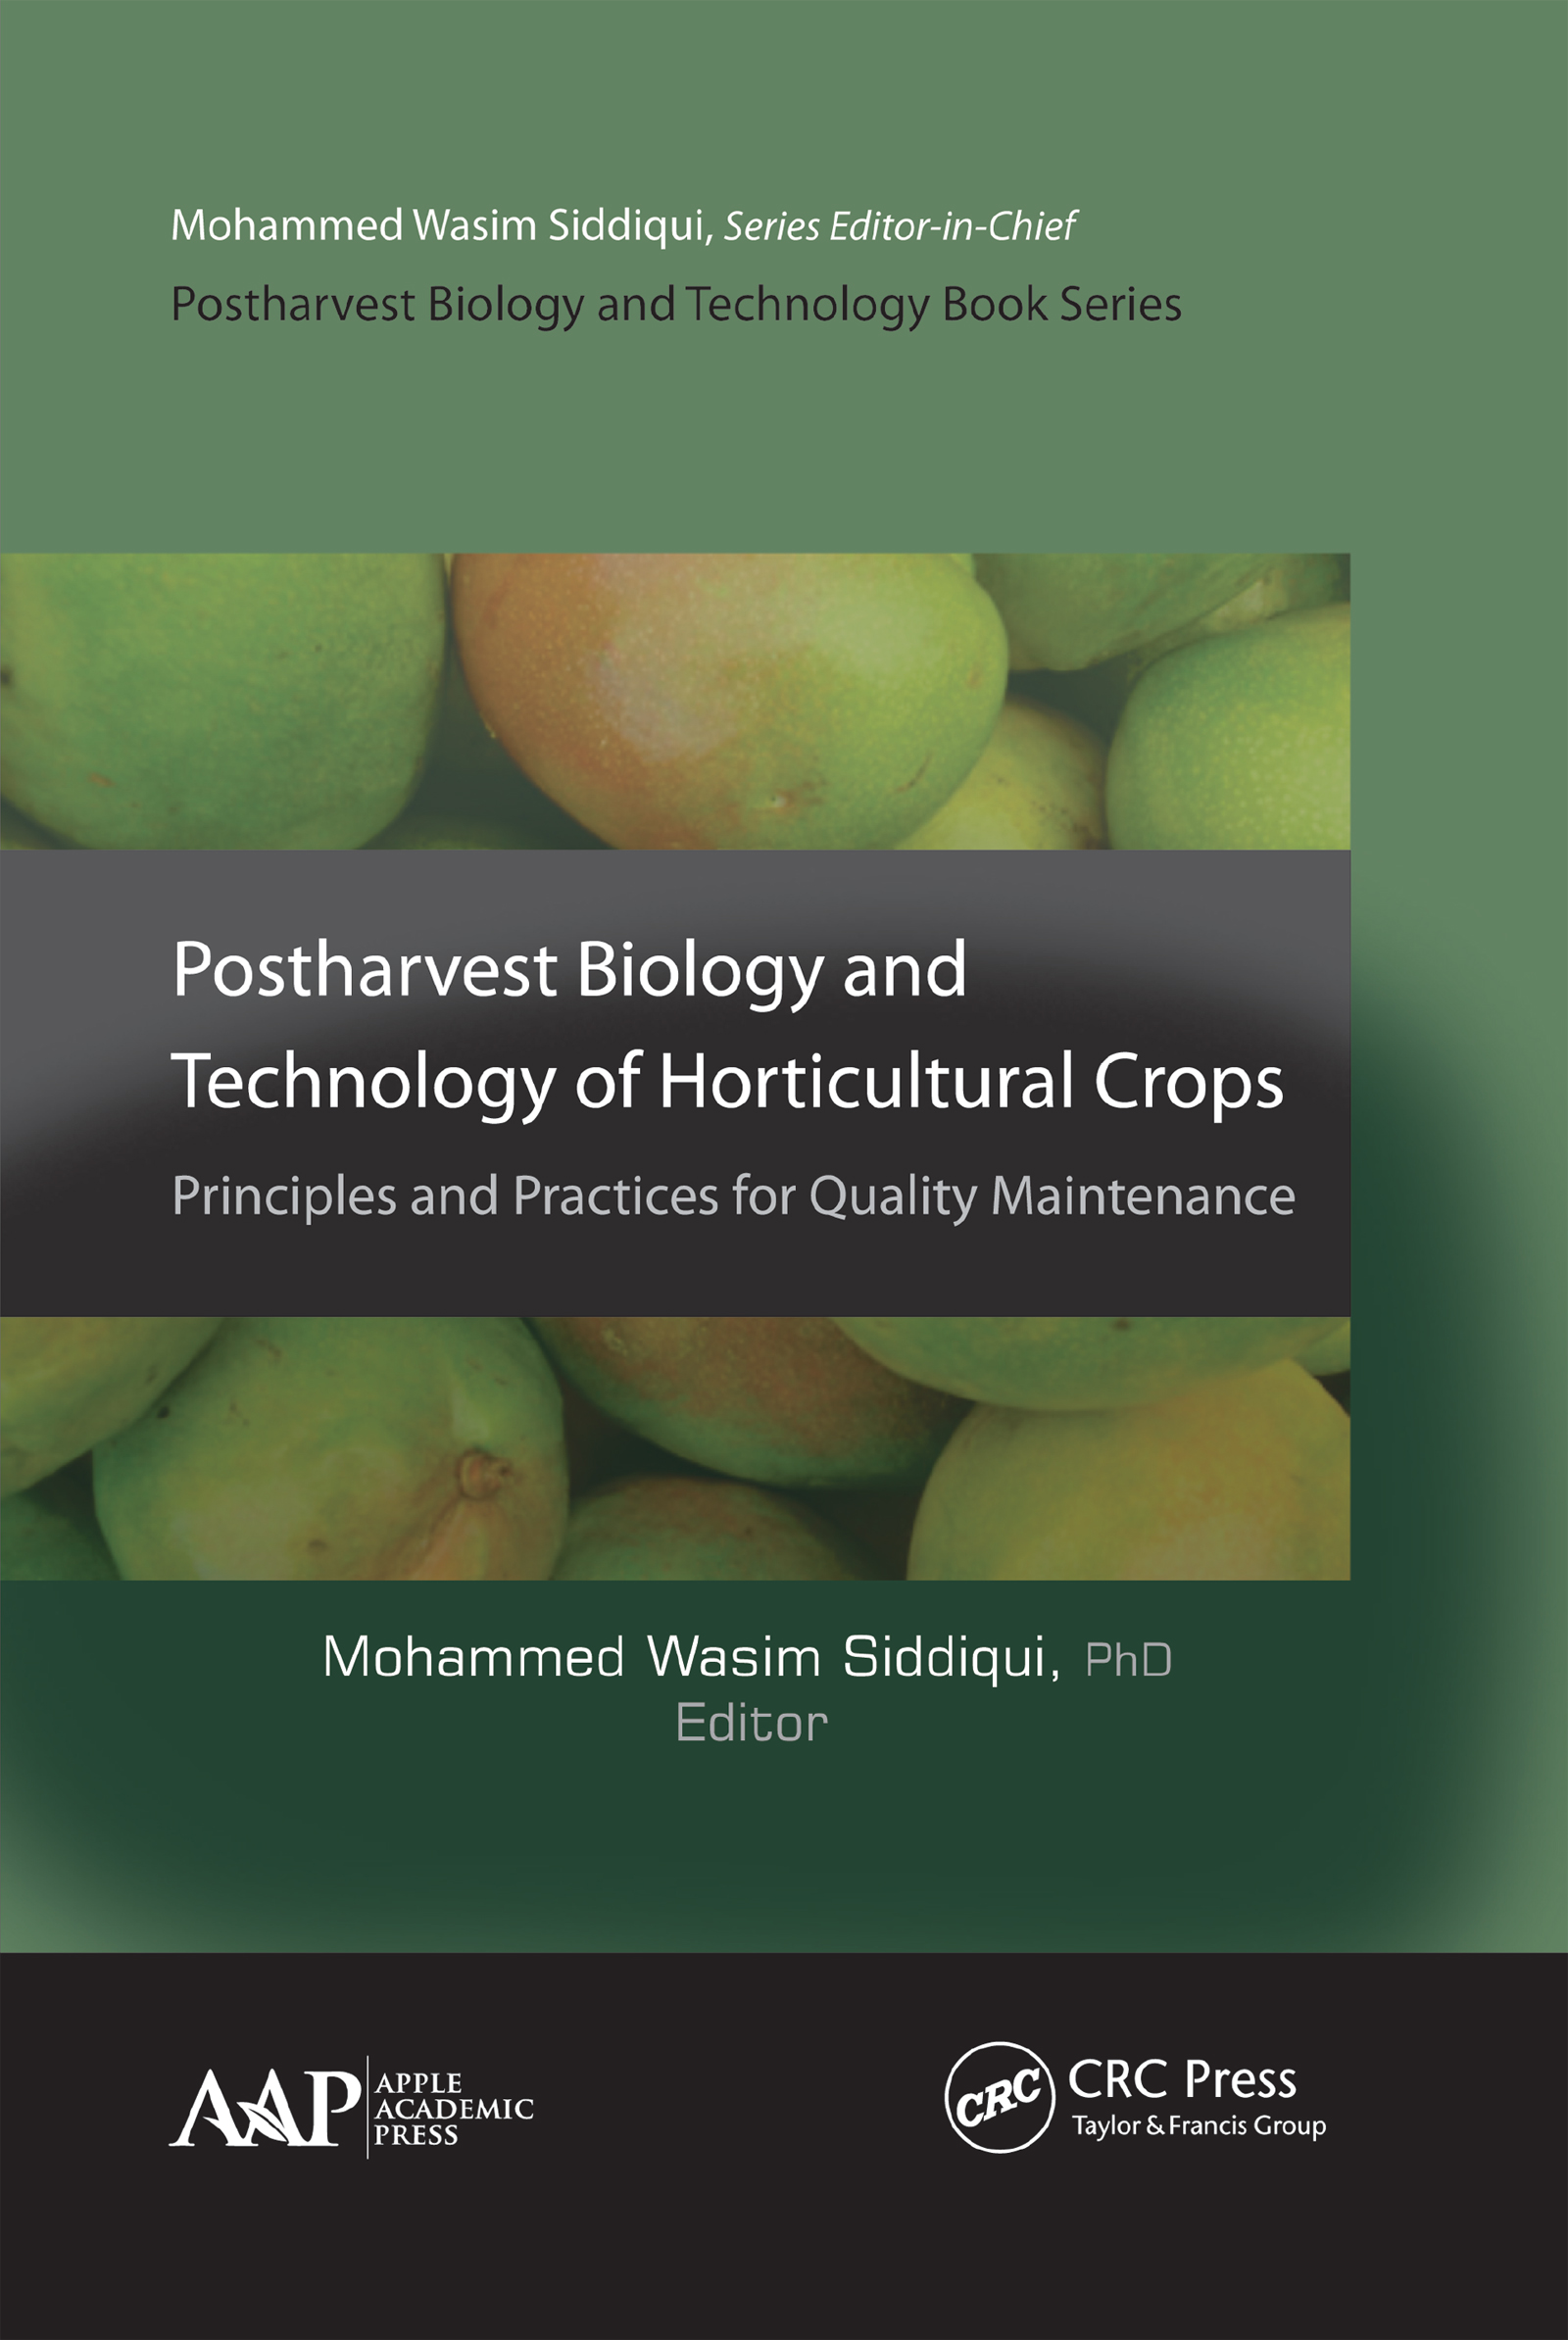 Postharvest Biology and Technology of Horticultural Crops: Principles and Practices for Quality Maintenance book cover